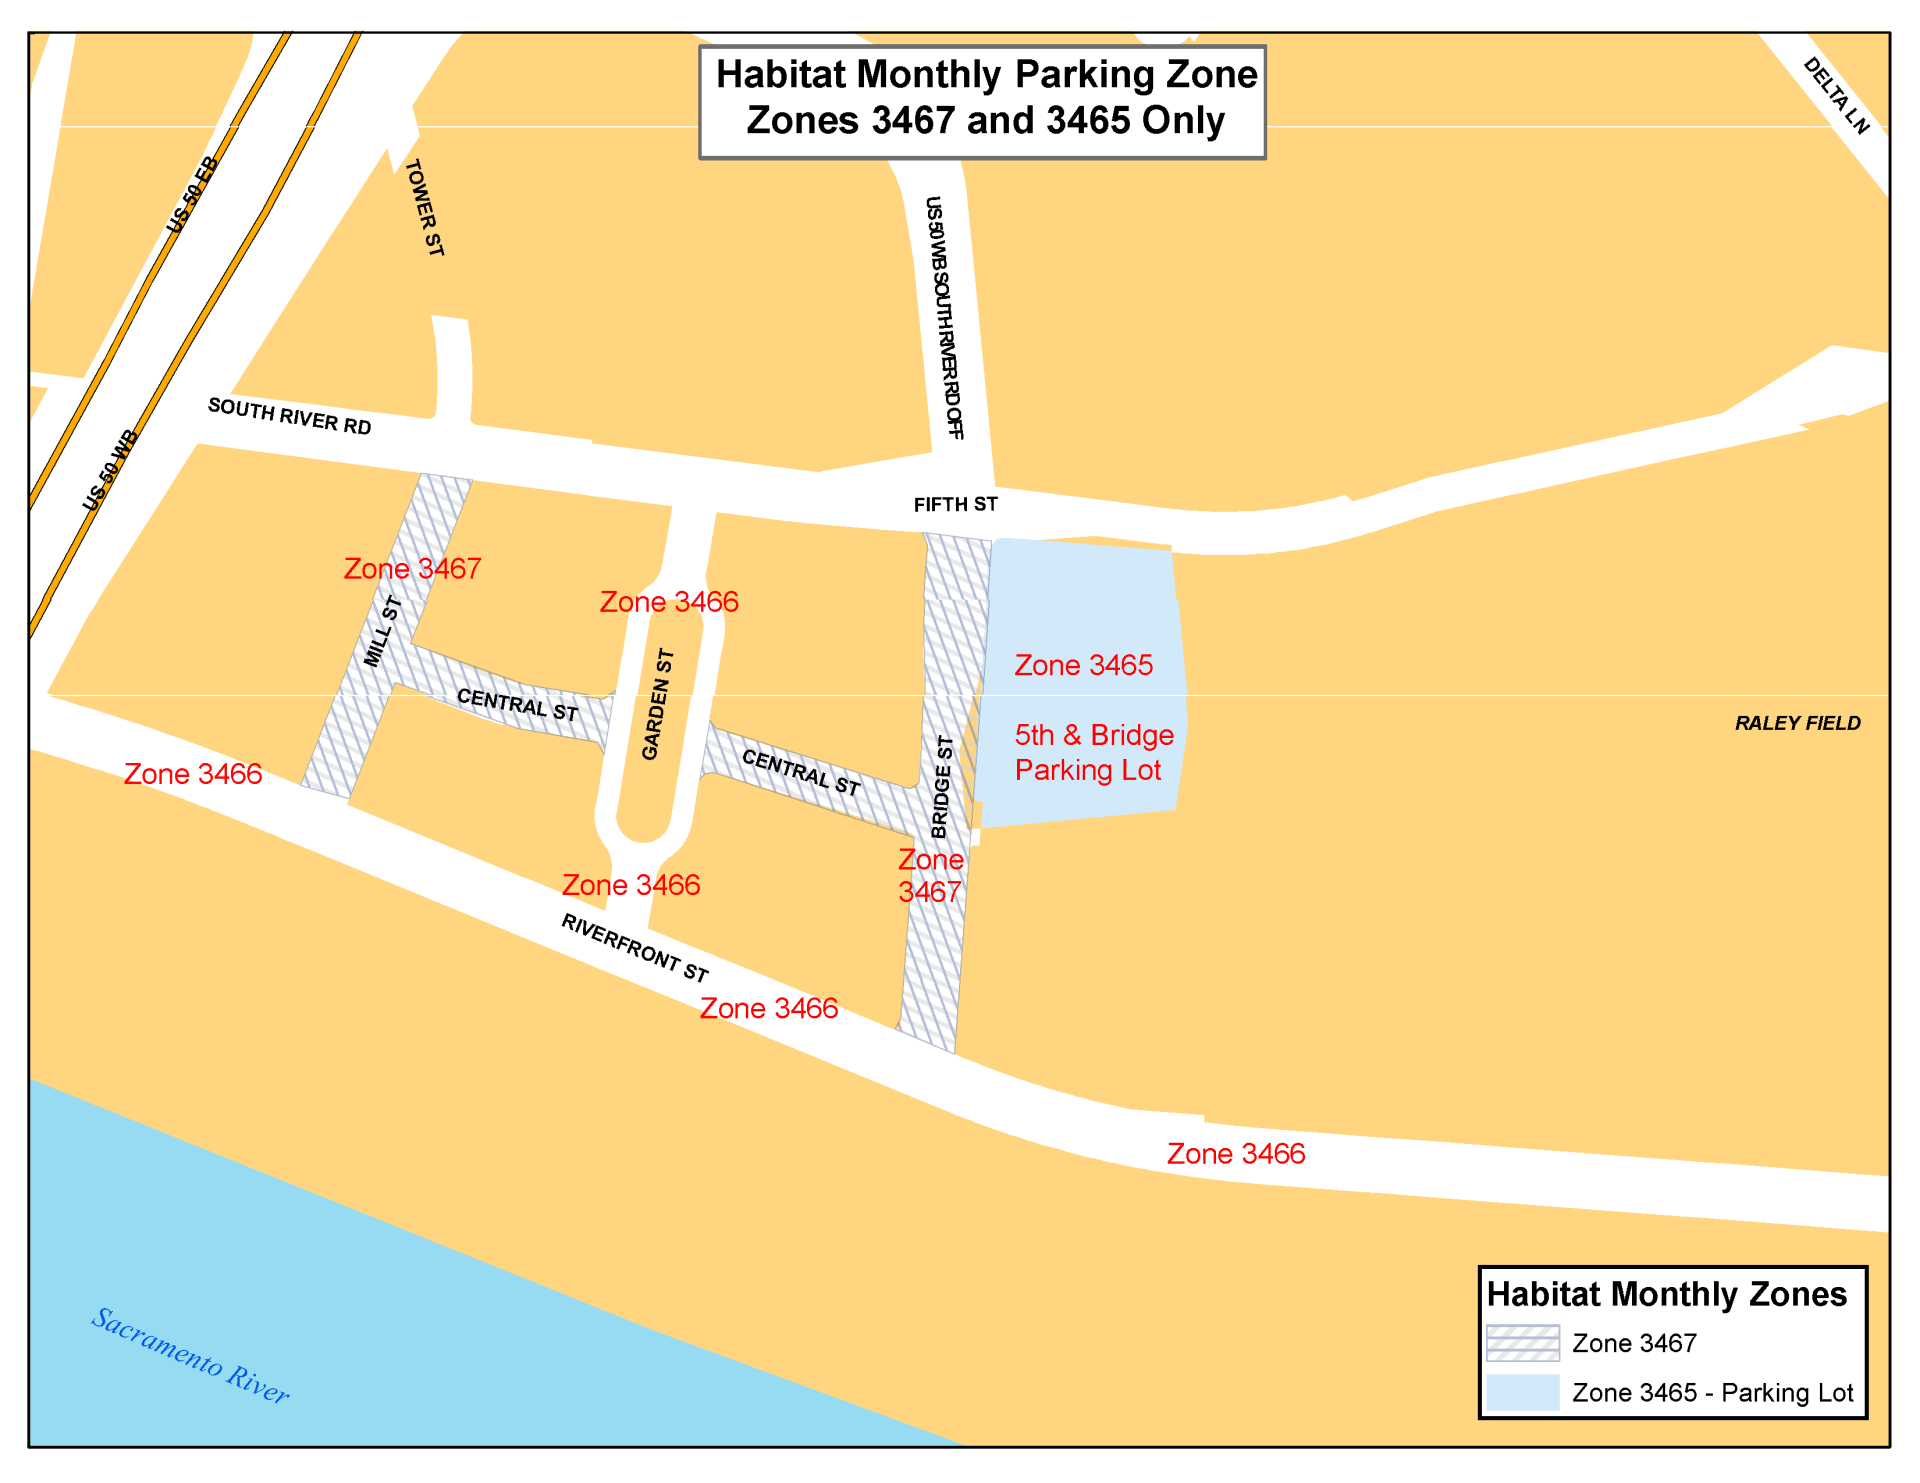 Habitat Monthly Parking Zone